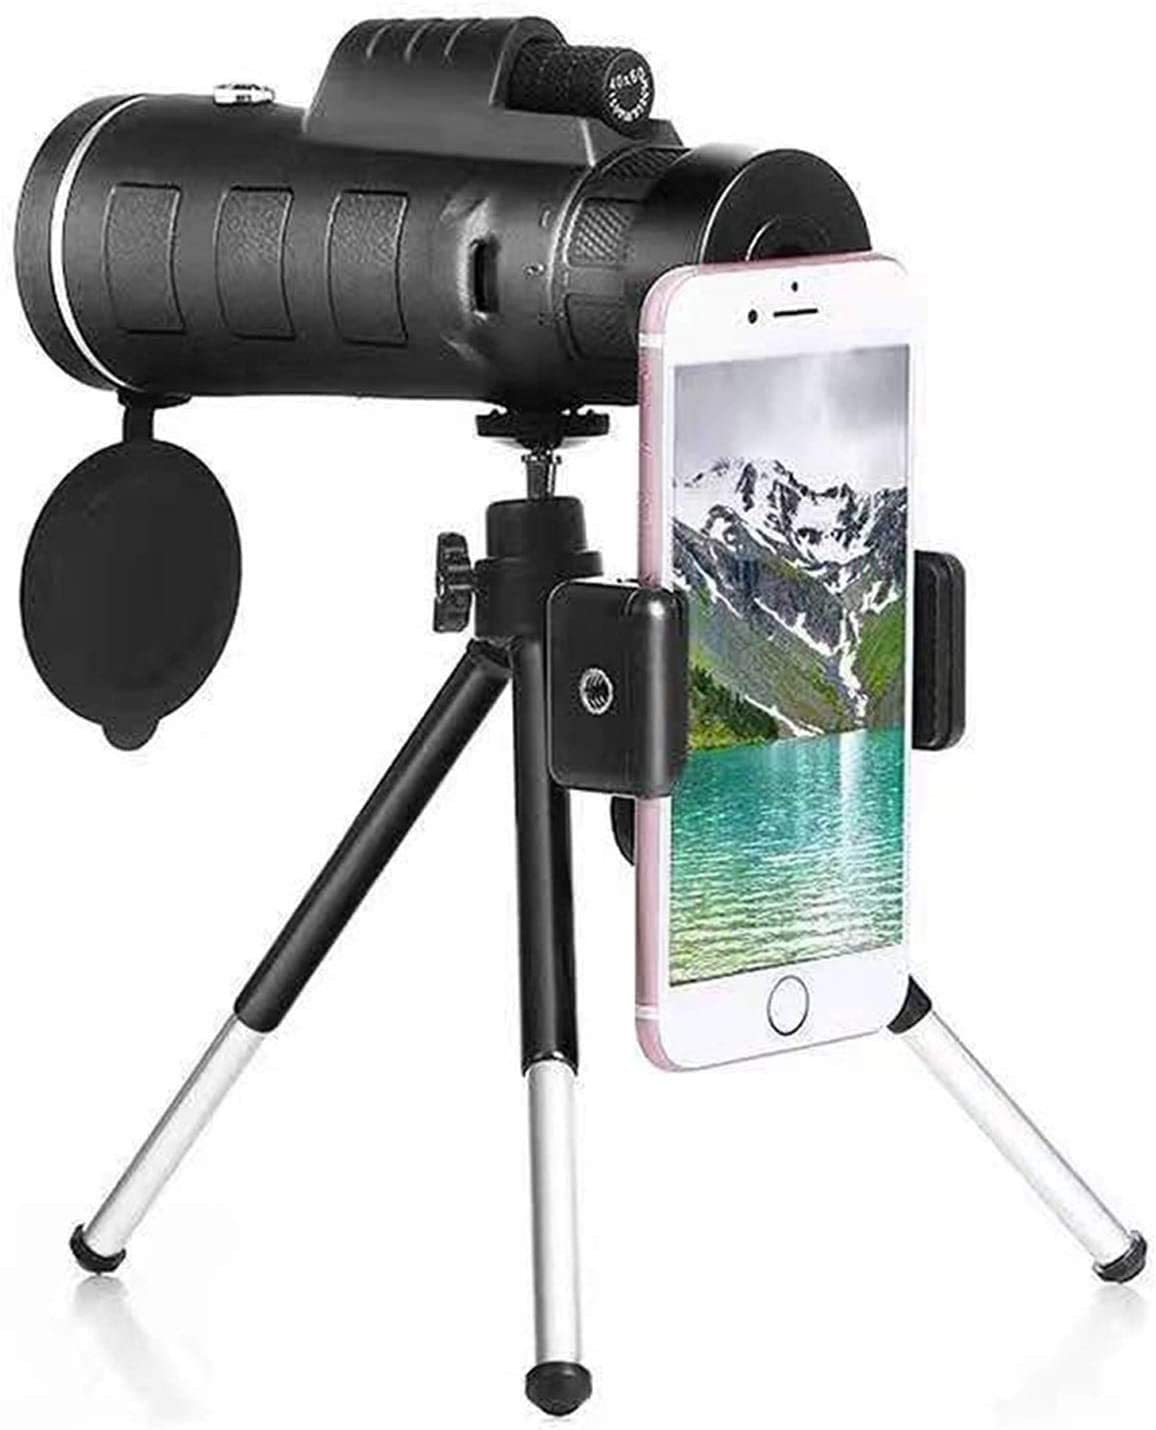 Monocular Starscope Telescope Fit for Phone 40X60 Zoom Fit for Smartphone Monocular Telescope Scope Camera Camping Hiking with Compass Phone Clip Tripod